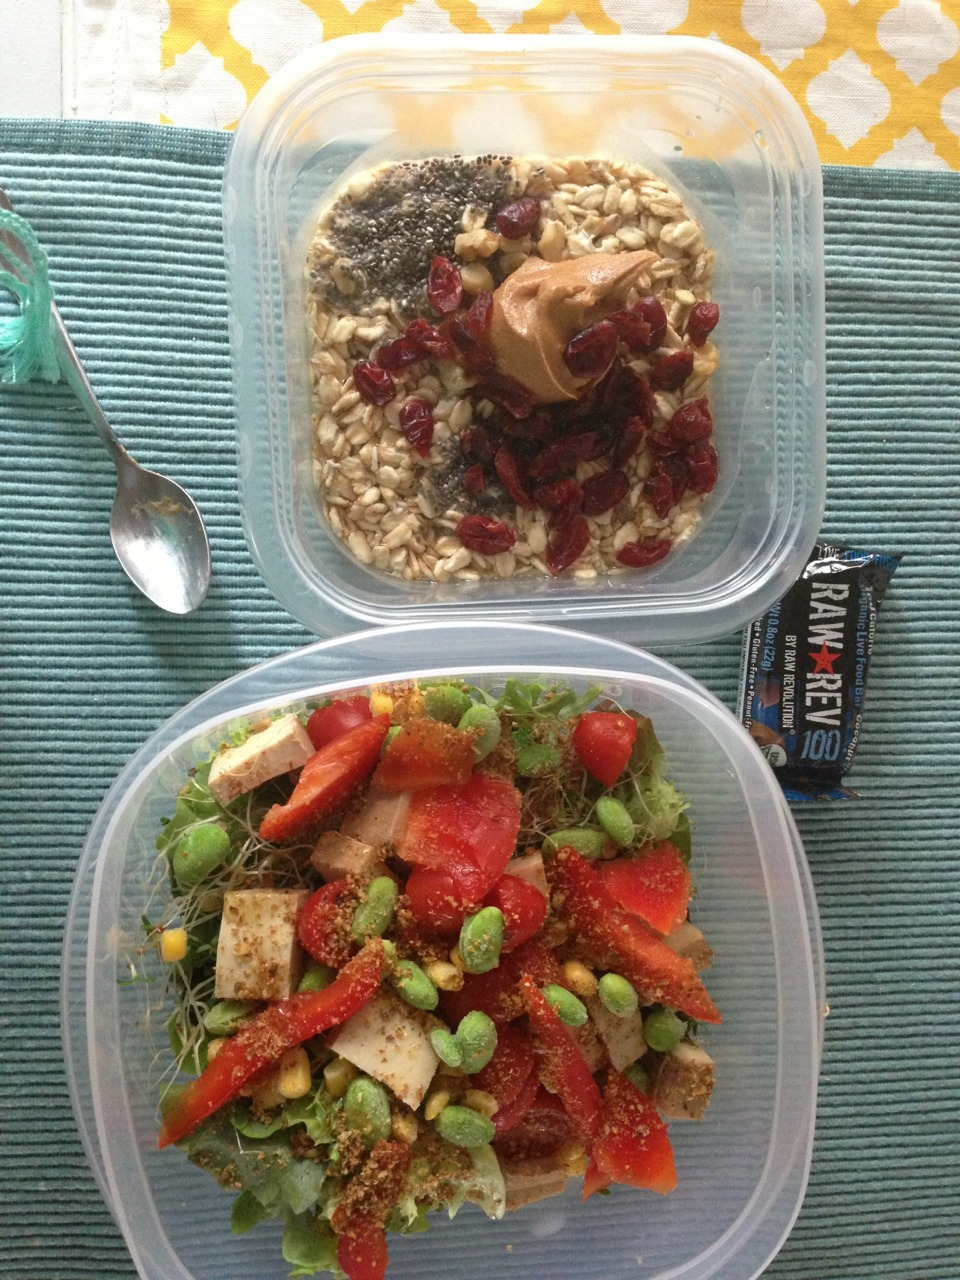 Today's packed meals:   - oatmeal with chia seeds, dried cranberries, smooth organic peanut butter and walnuts for crunch.  - salad with spring mix & kale, smoked tofu, edamame, corn, red pepper, tomatoes, alfalfa sprouts, flax seed blend and a little olive oil.  - snack of a RawRev sample bar (raw organic chocolate coconut energy bar thing, courtesy of Consmr)